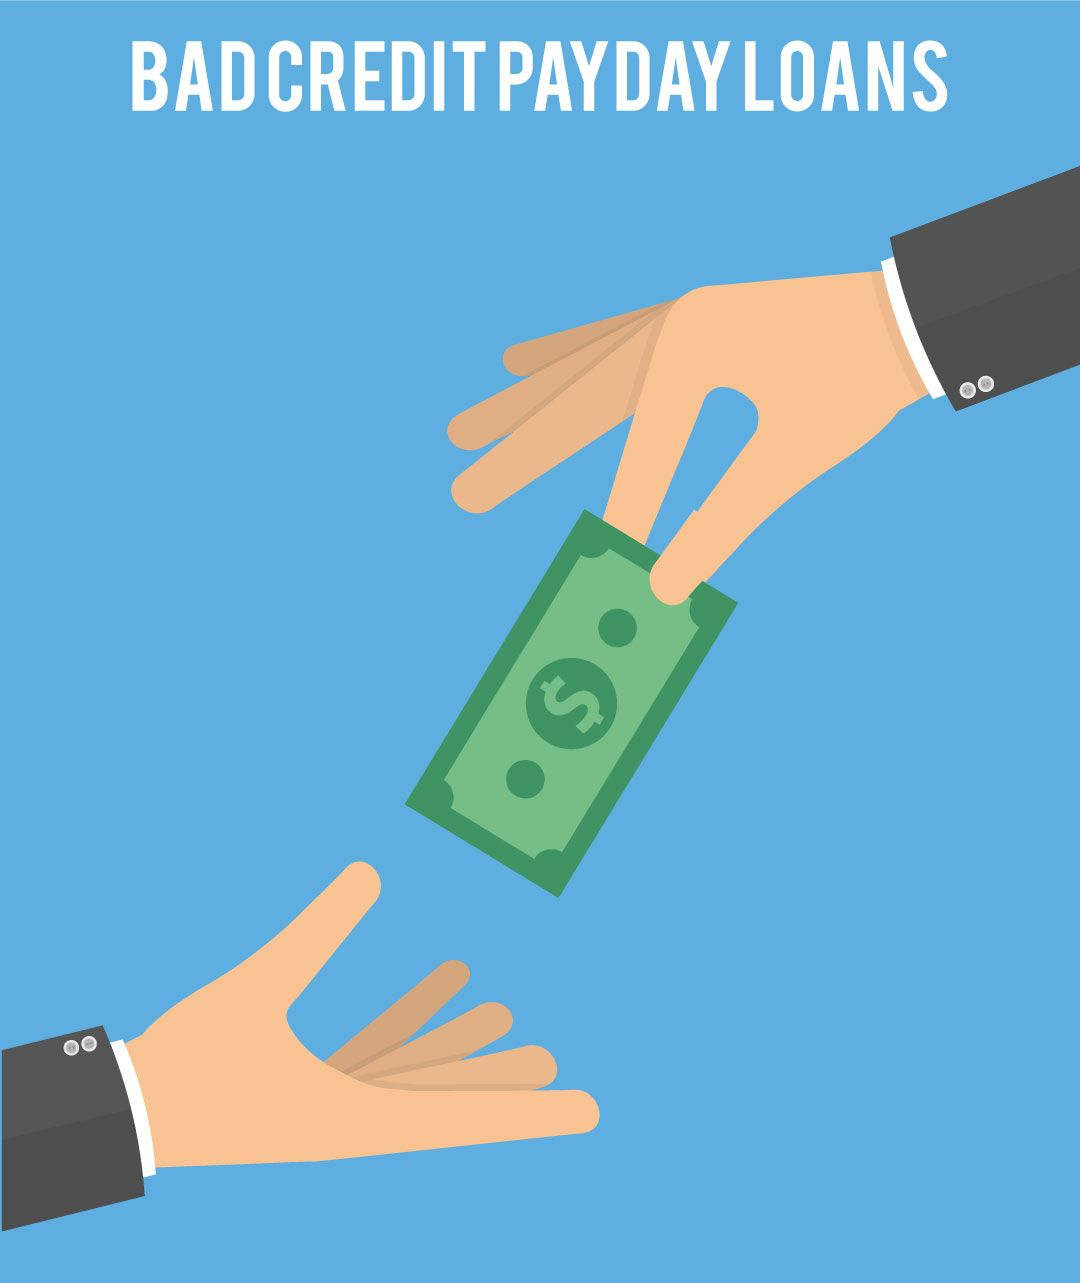 Https Www Cash1paydayloan Com Bad Credit Payday Loans Aspx Back In The Day Payday Loan Lenders Would Require You To Pay Your Loan Lenders Payday Loans Loan